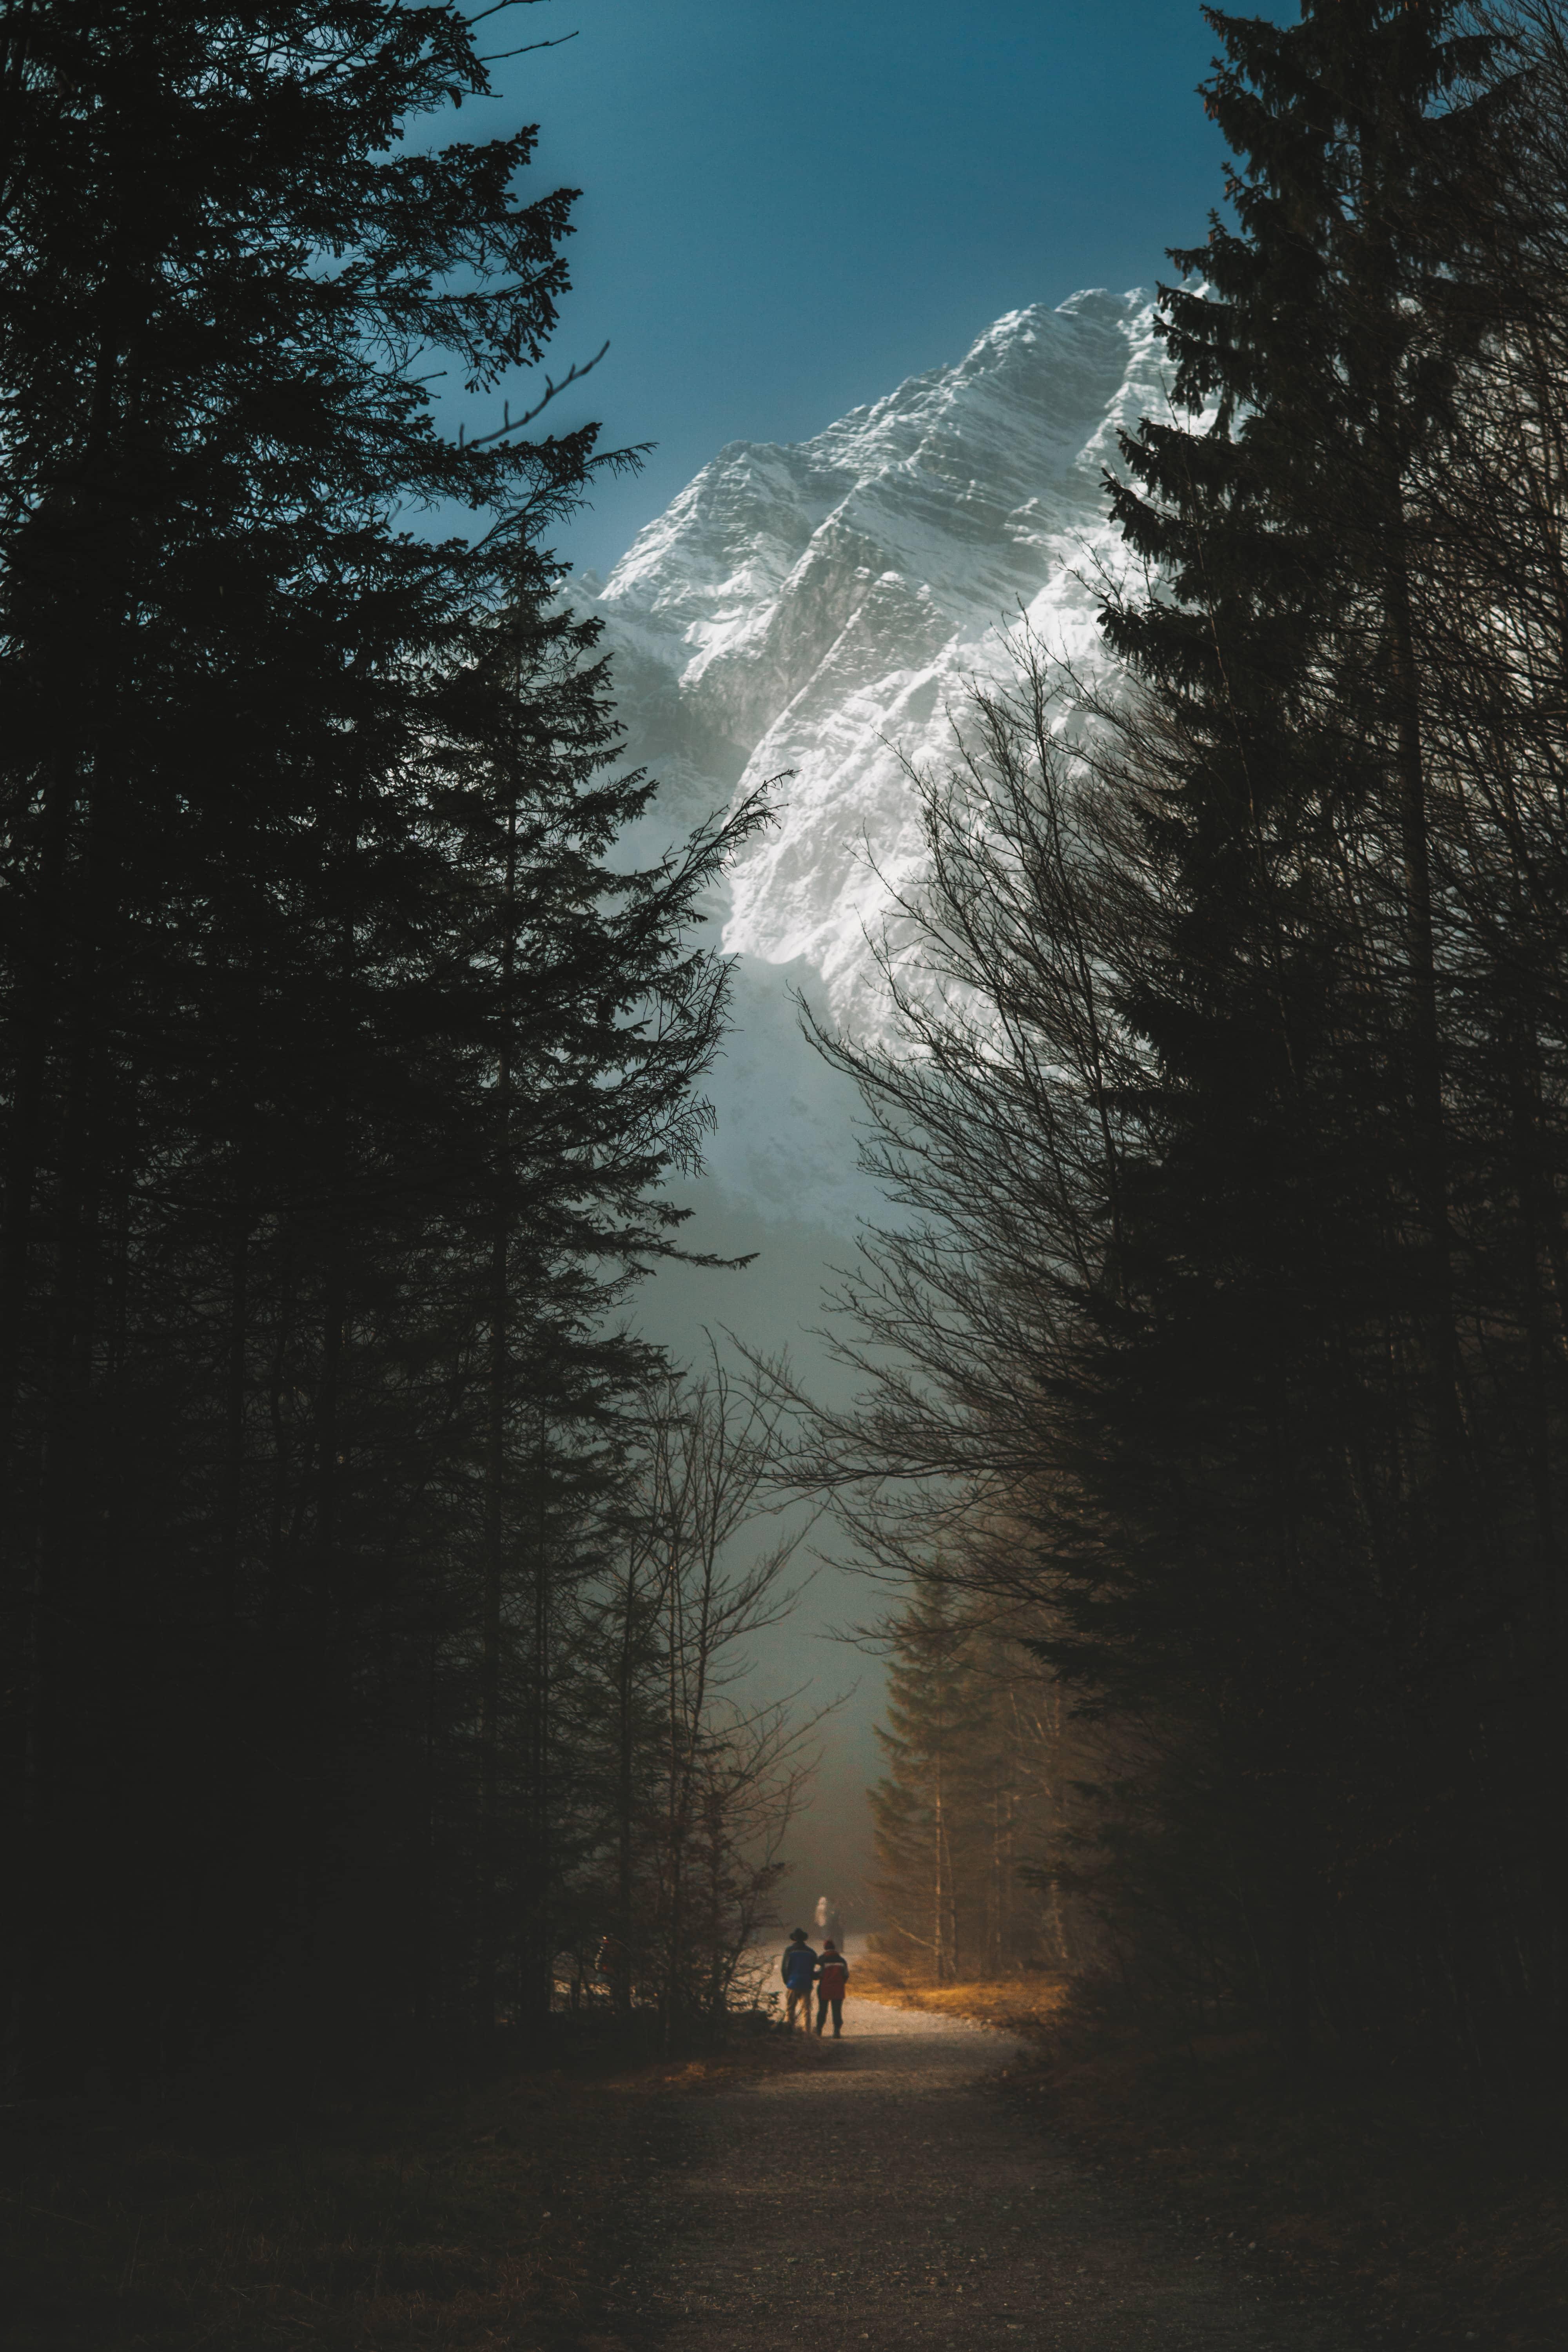 huge mountains surrounded by trees with two persons in front